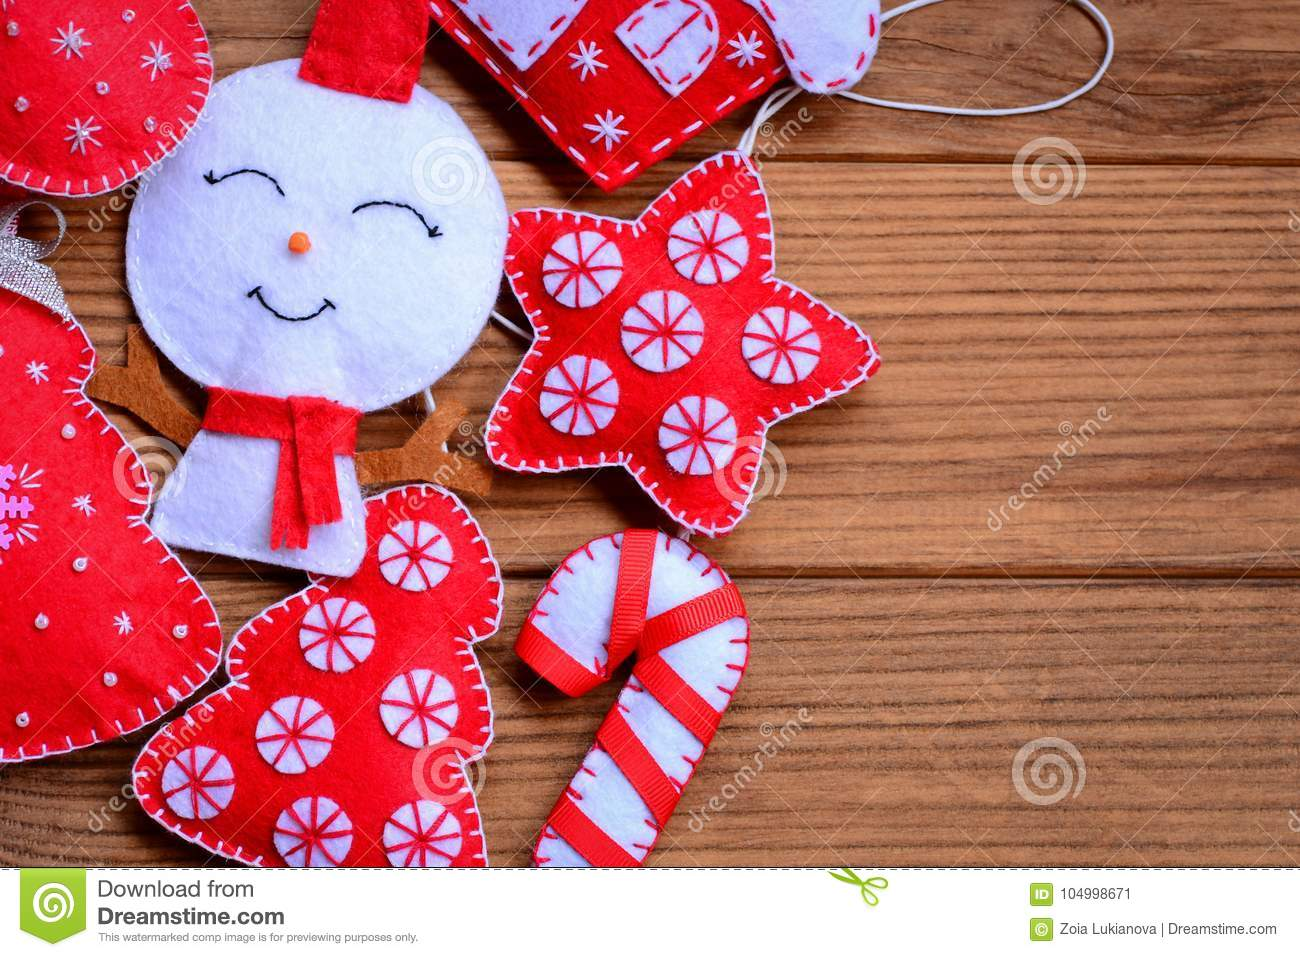 Felt Christmas Decorations On A Wooden Background With Copy Space